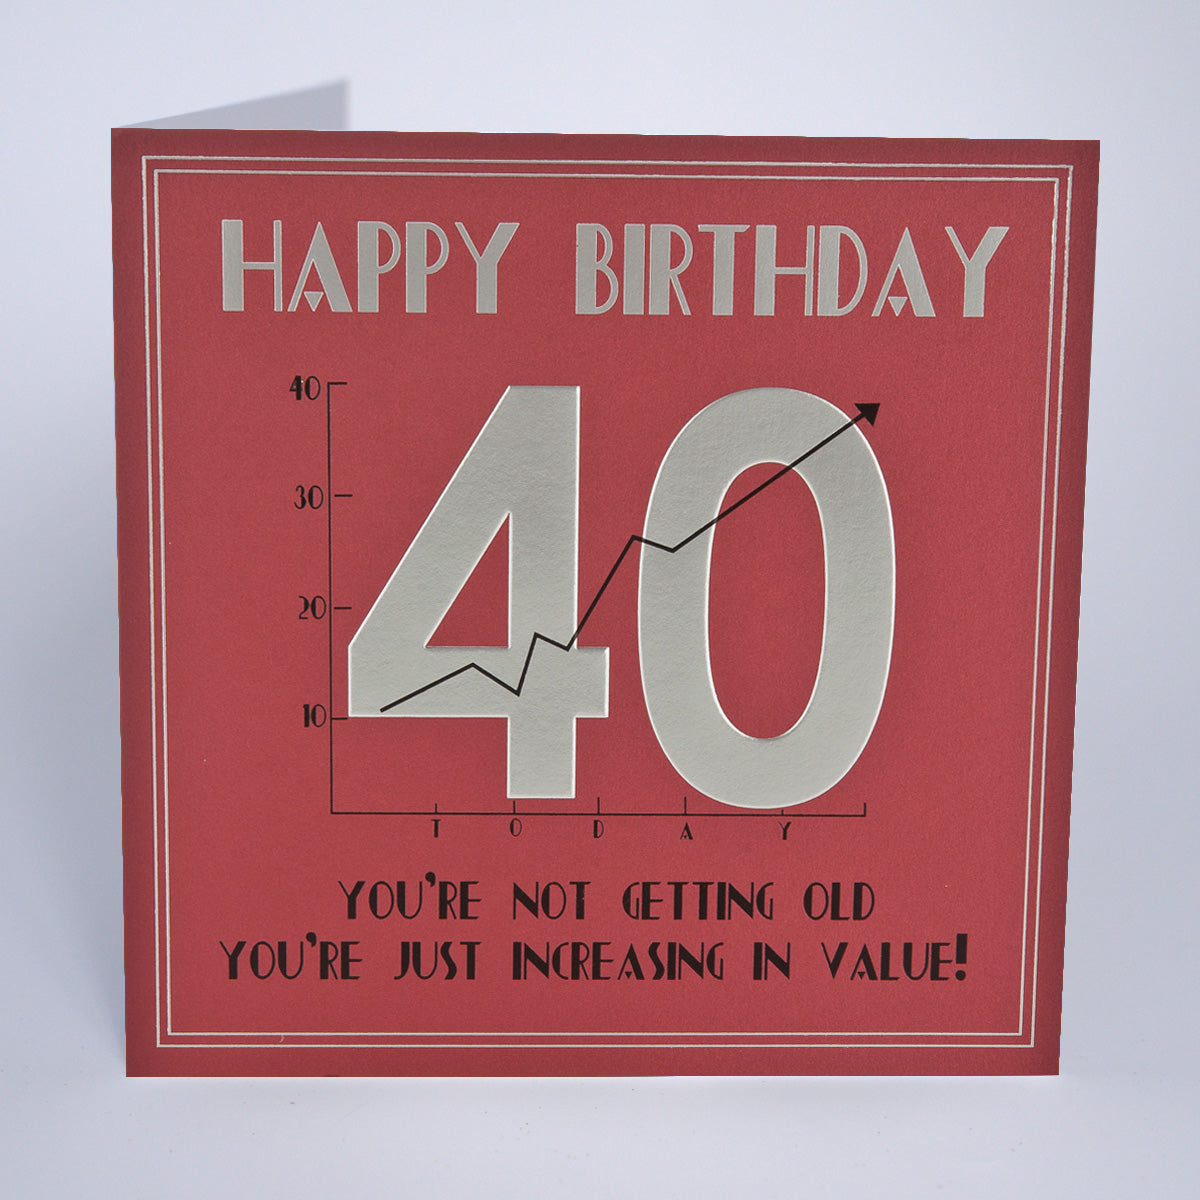 40th Birthday - Increasing In Value